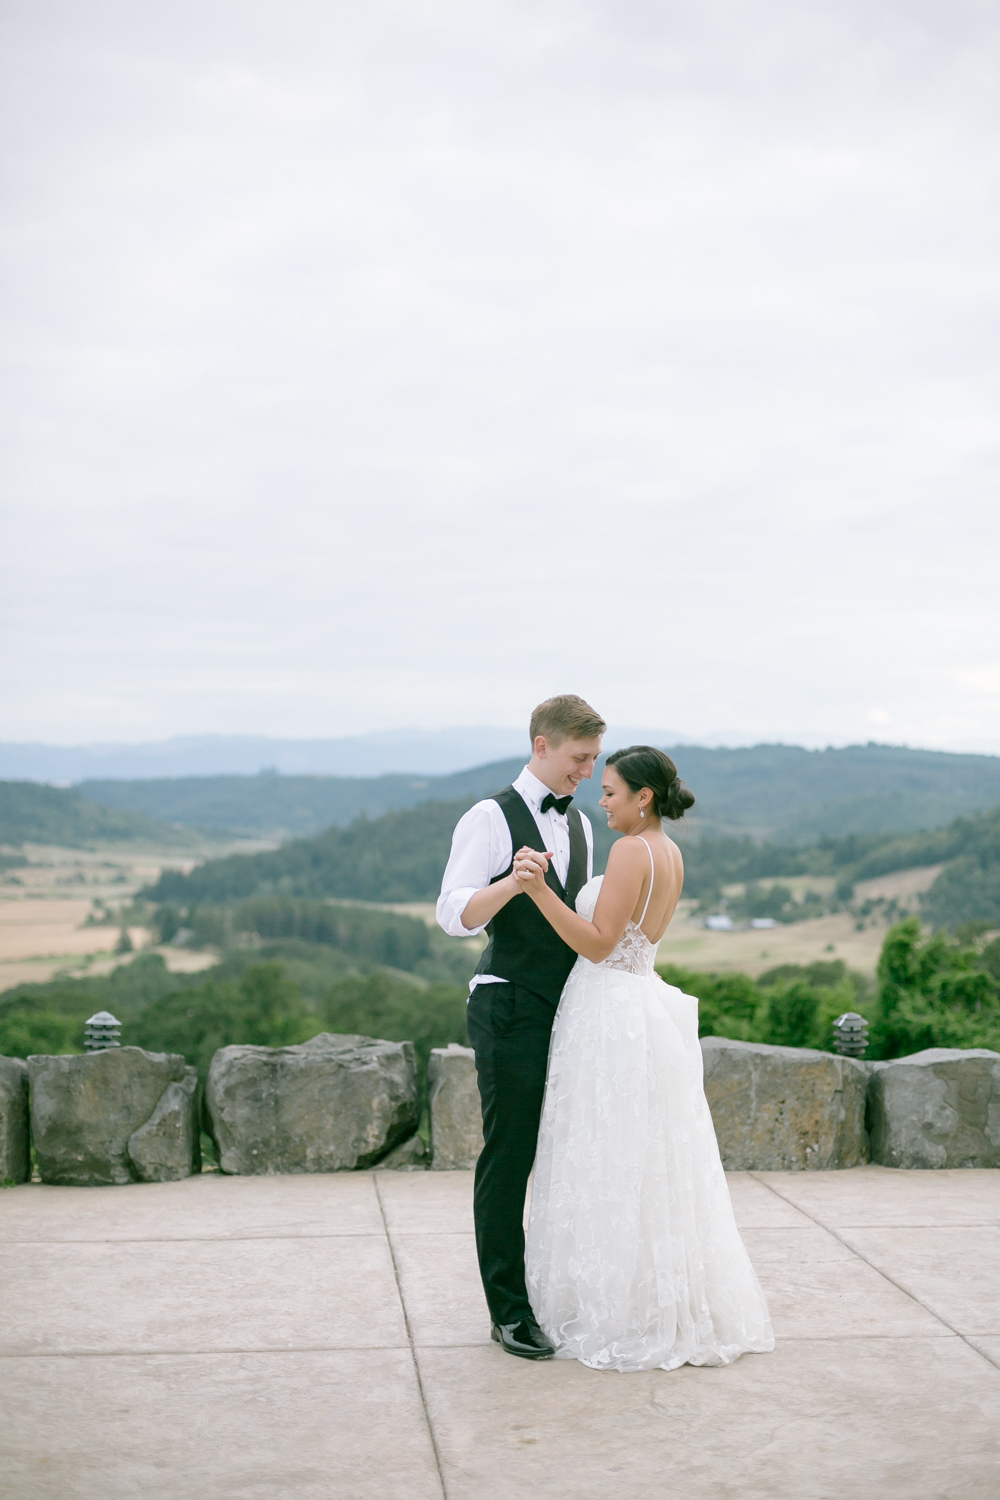 Youngberg Hill Vineyard Wedding in Wine Country Oregon - Corrie Mick Photography-441.jpg